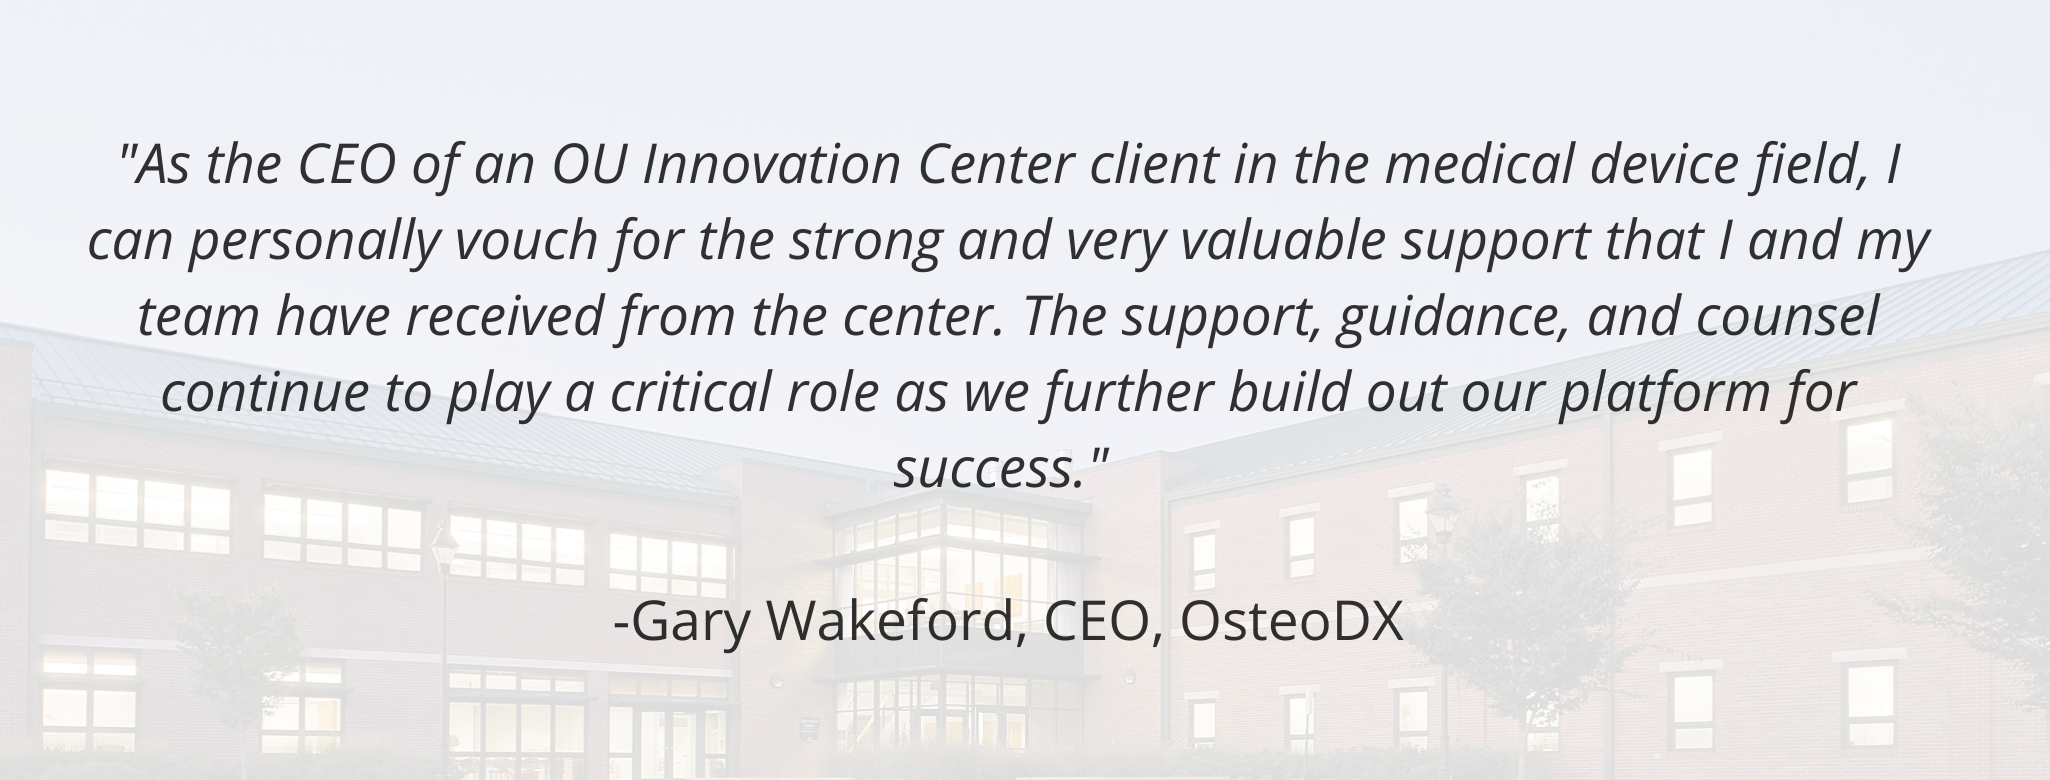 """""""As the CEO of an OU Innovation Center client in the medical device field, I can personally vouch for the strong and very valuable support that I and my team have received from the center. The support, guidance, and counsel continue to play a critical role as we further build out our platform for success.""""   -Gary Wakeford, CEO, OsteoDX"""